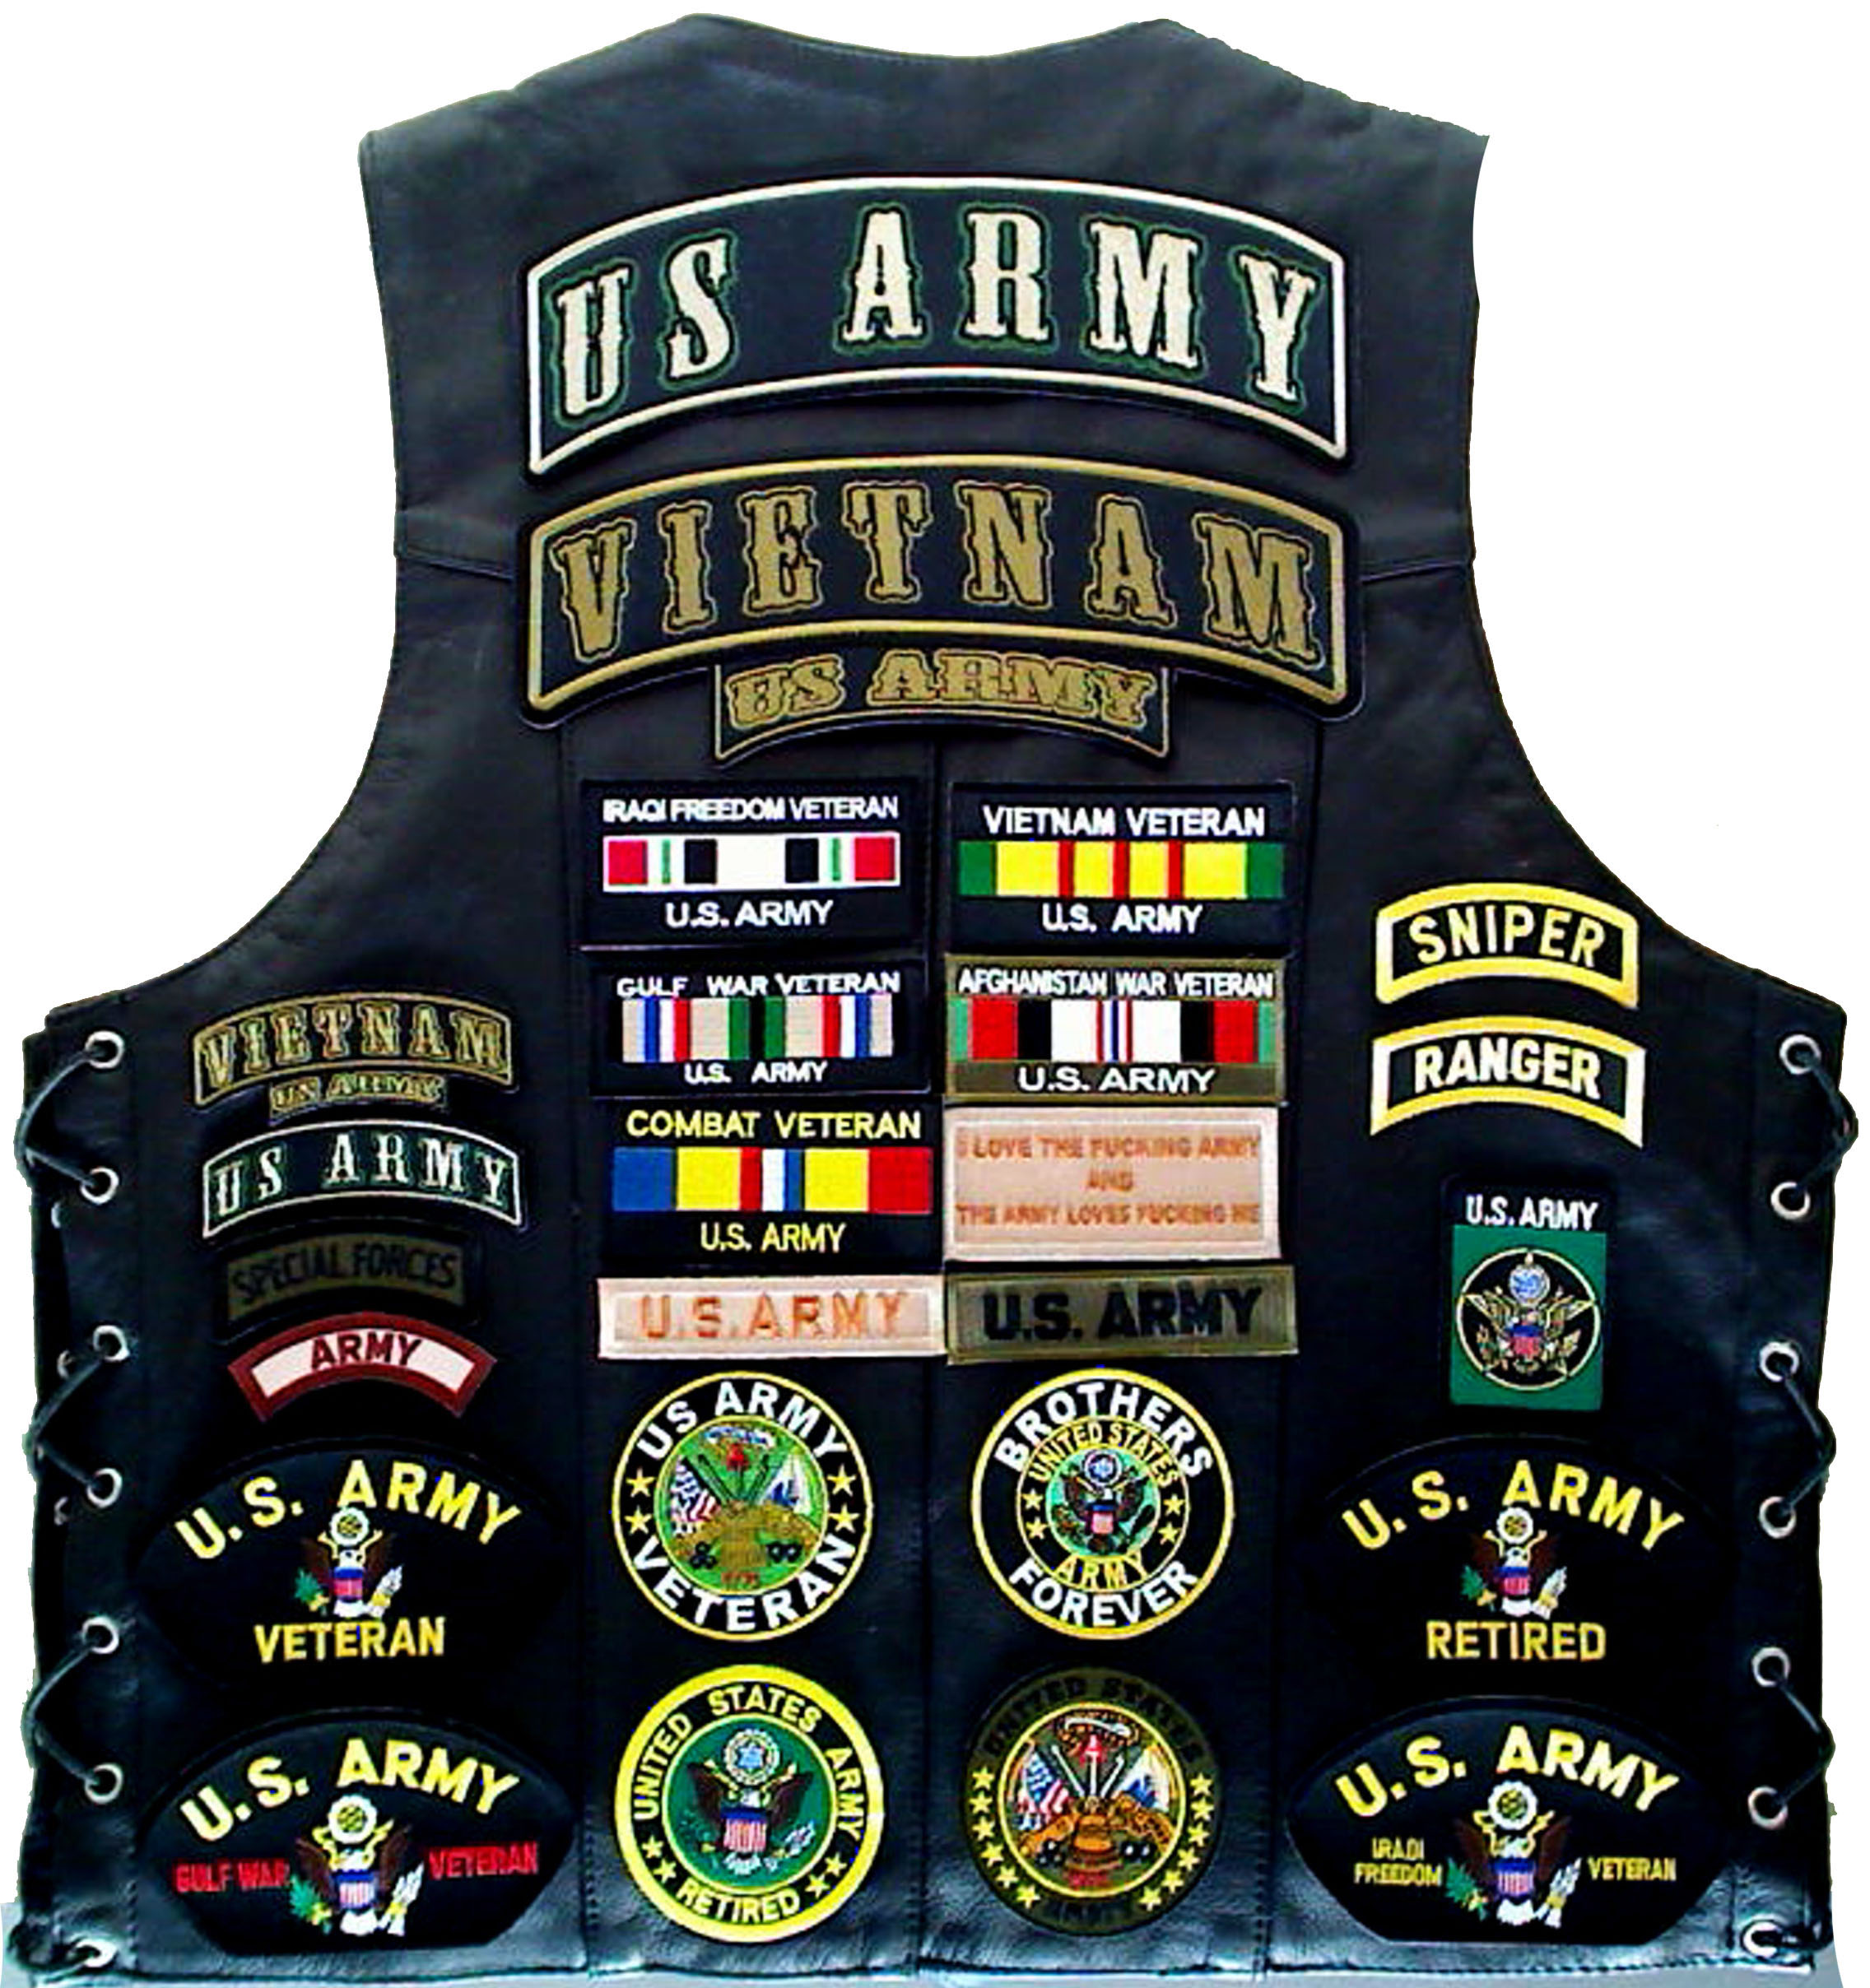 Vietnam Army Patches Meanings